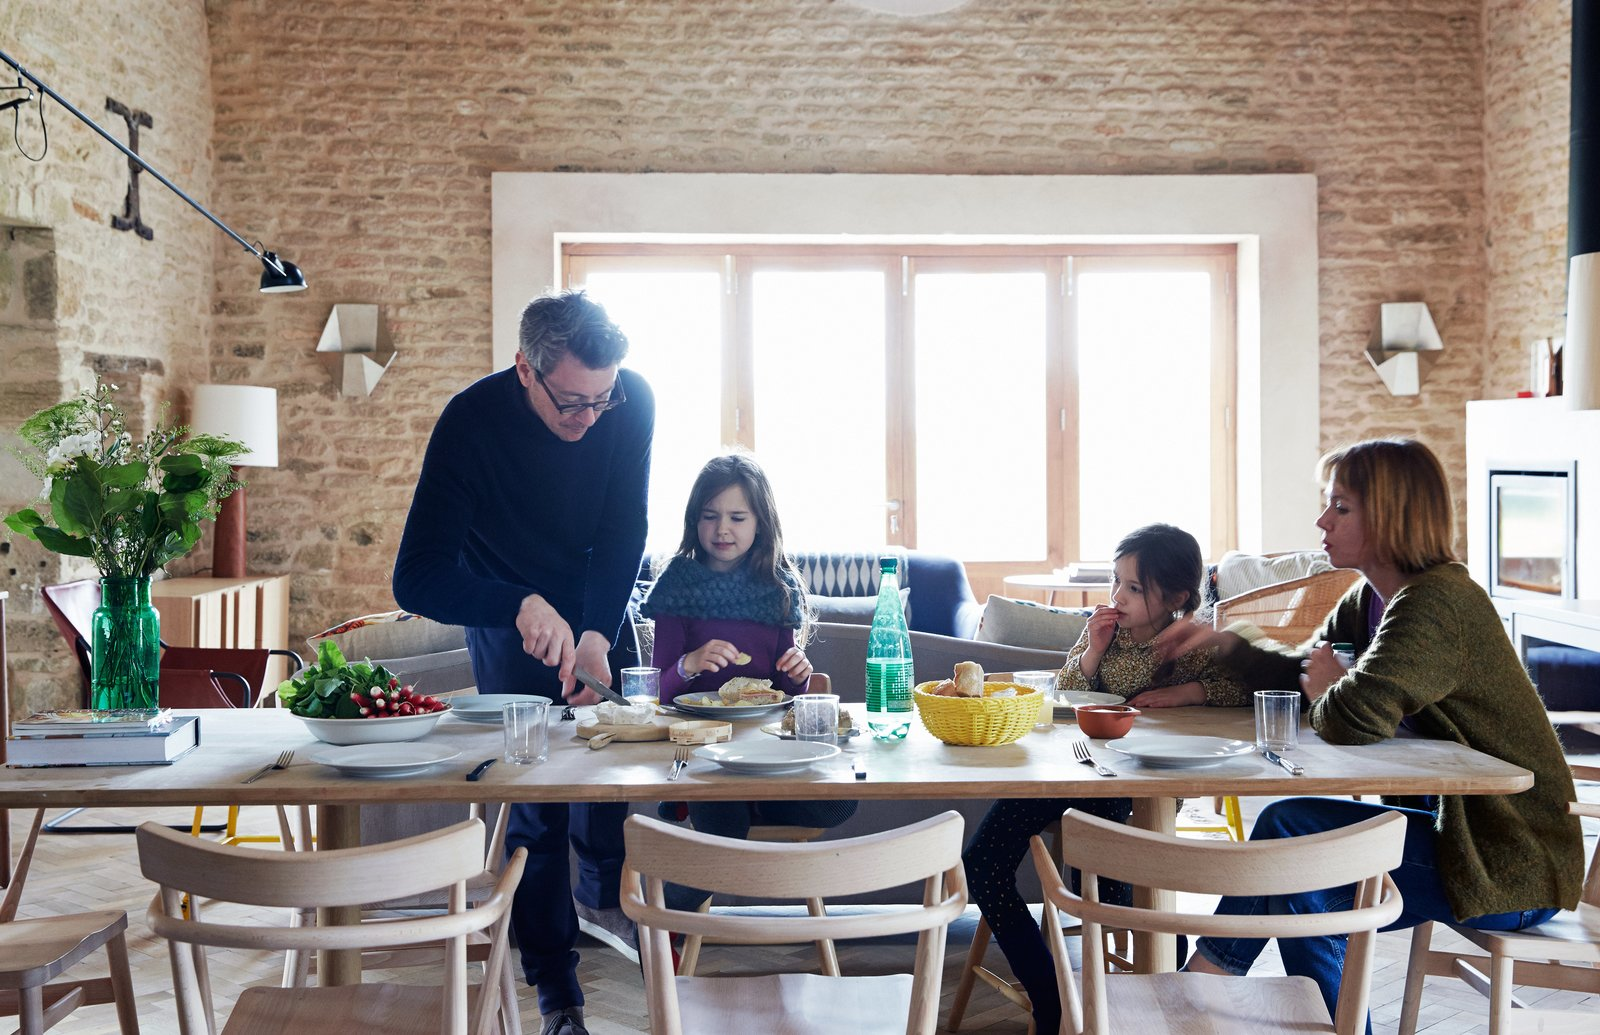 6 Main Tips to Consider When Designing Your Home For a Growing Family